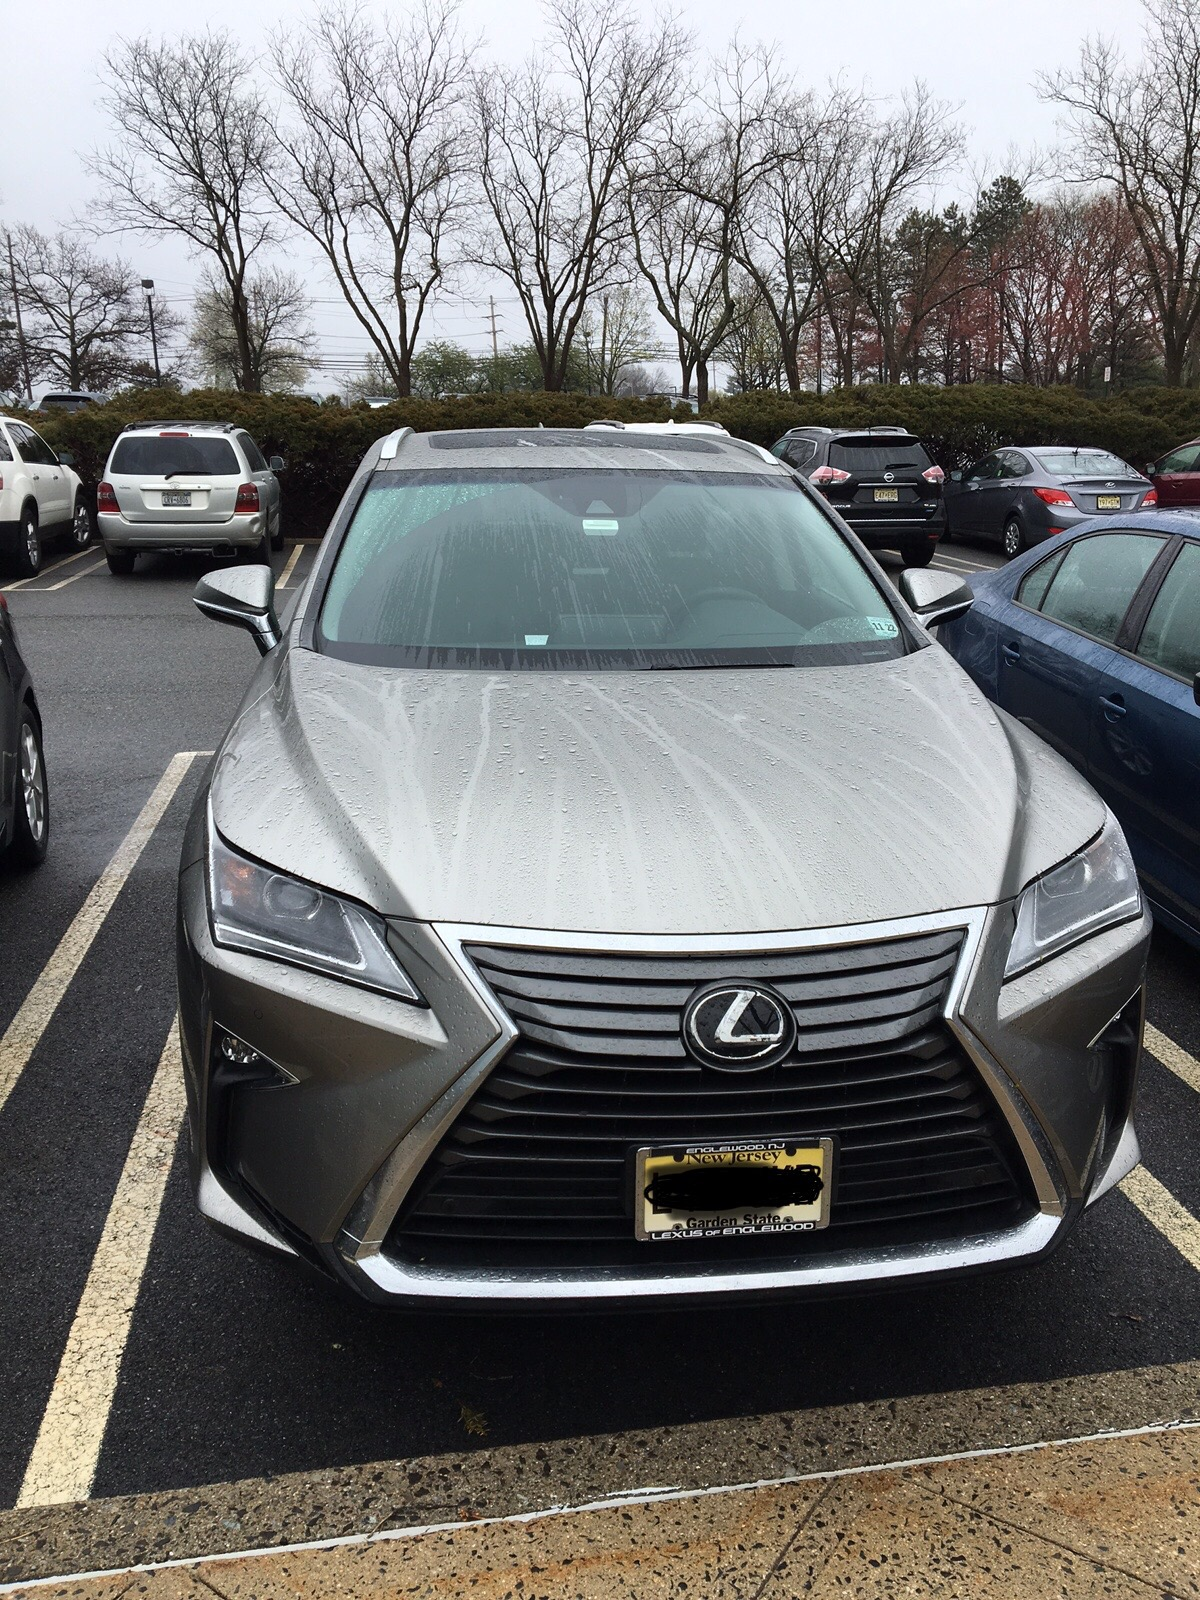 Nj Lease Takeover 2017 Lexus Rx 350 Awd 511 Month 30 Months Remaining